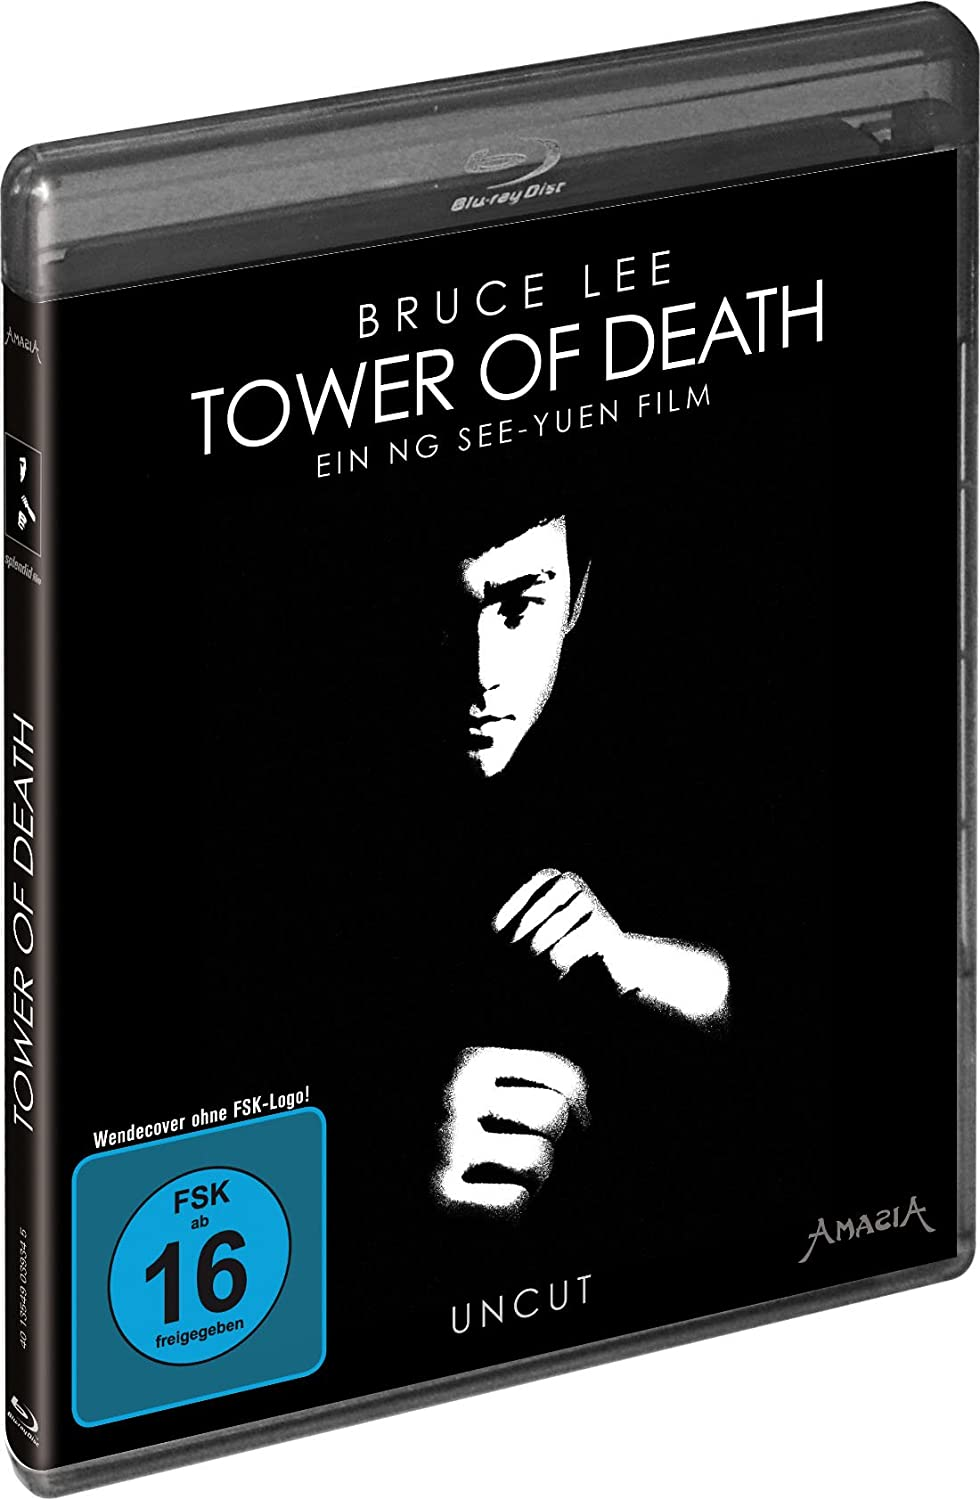 Bruce Lee - Tower of Death, Blu-ray